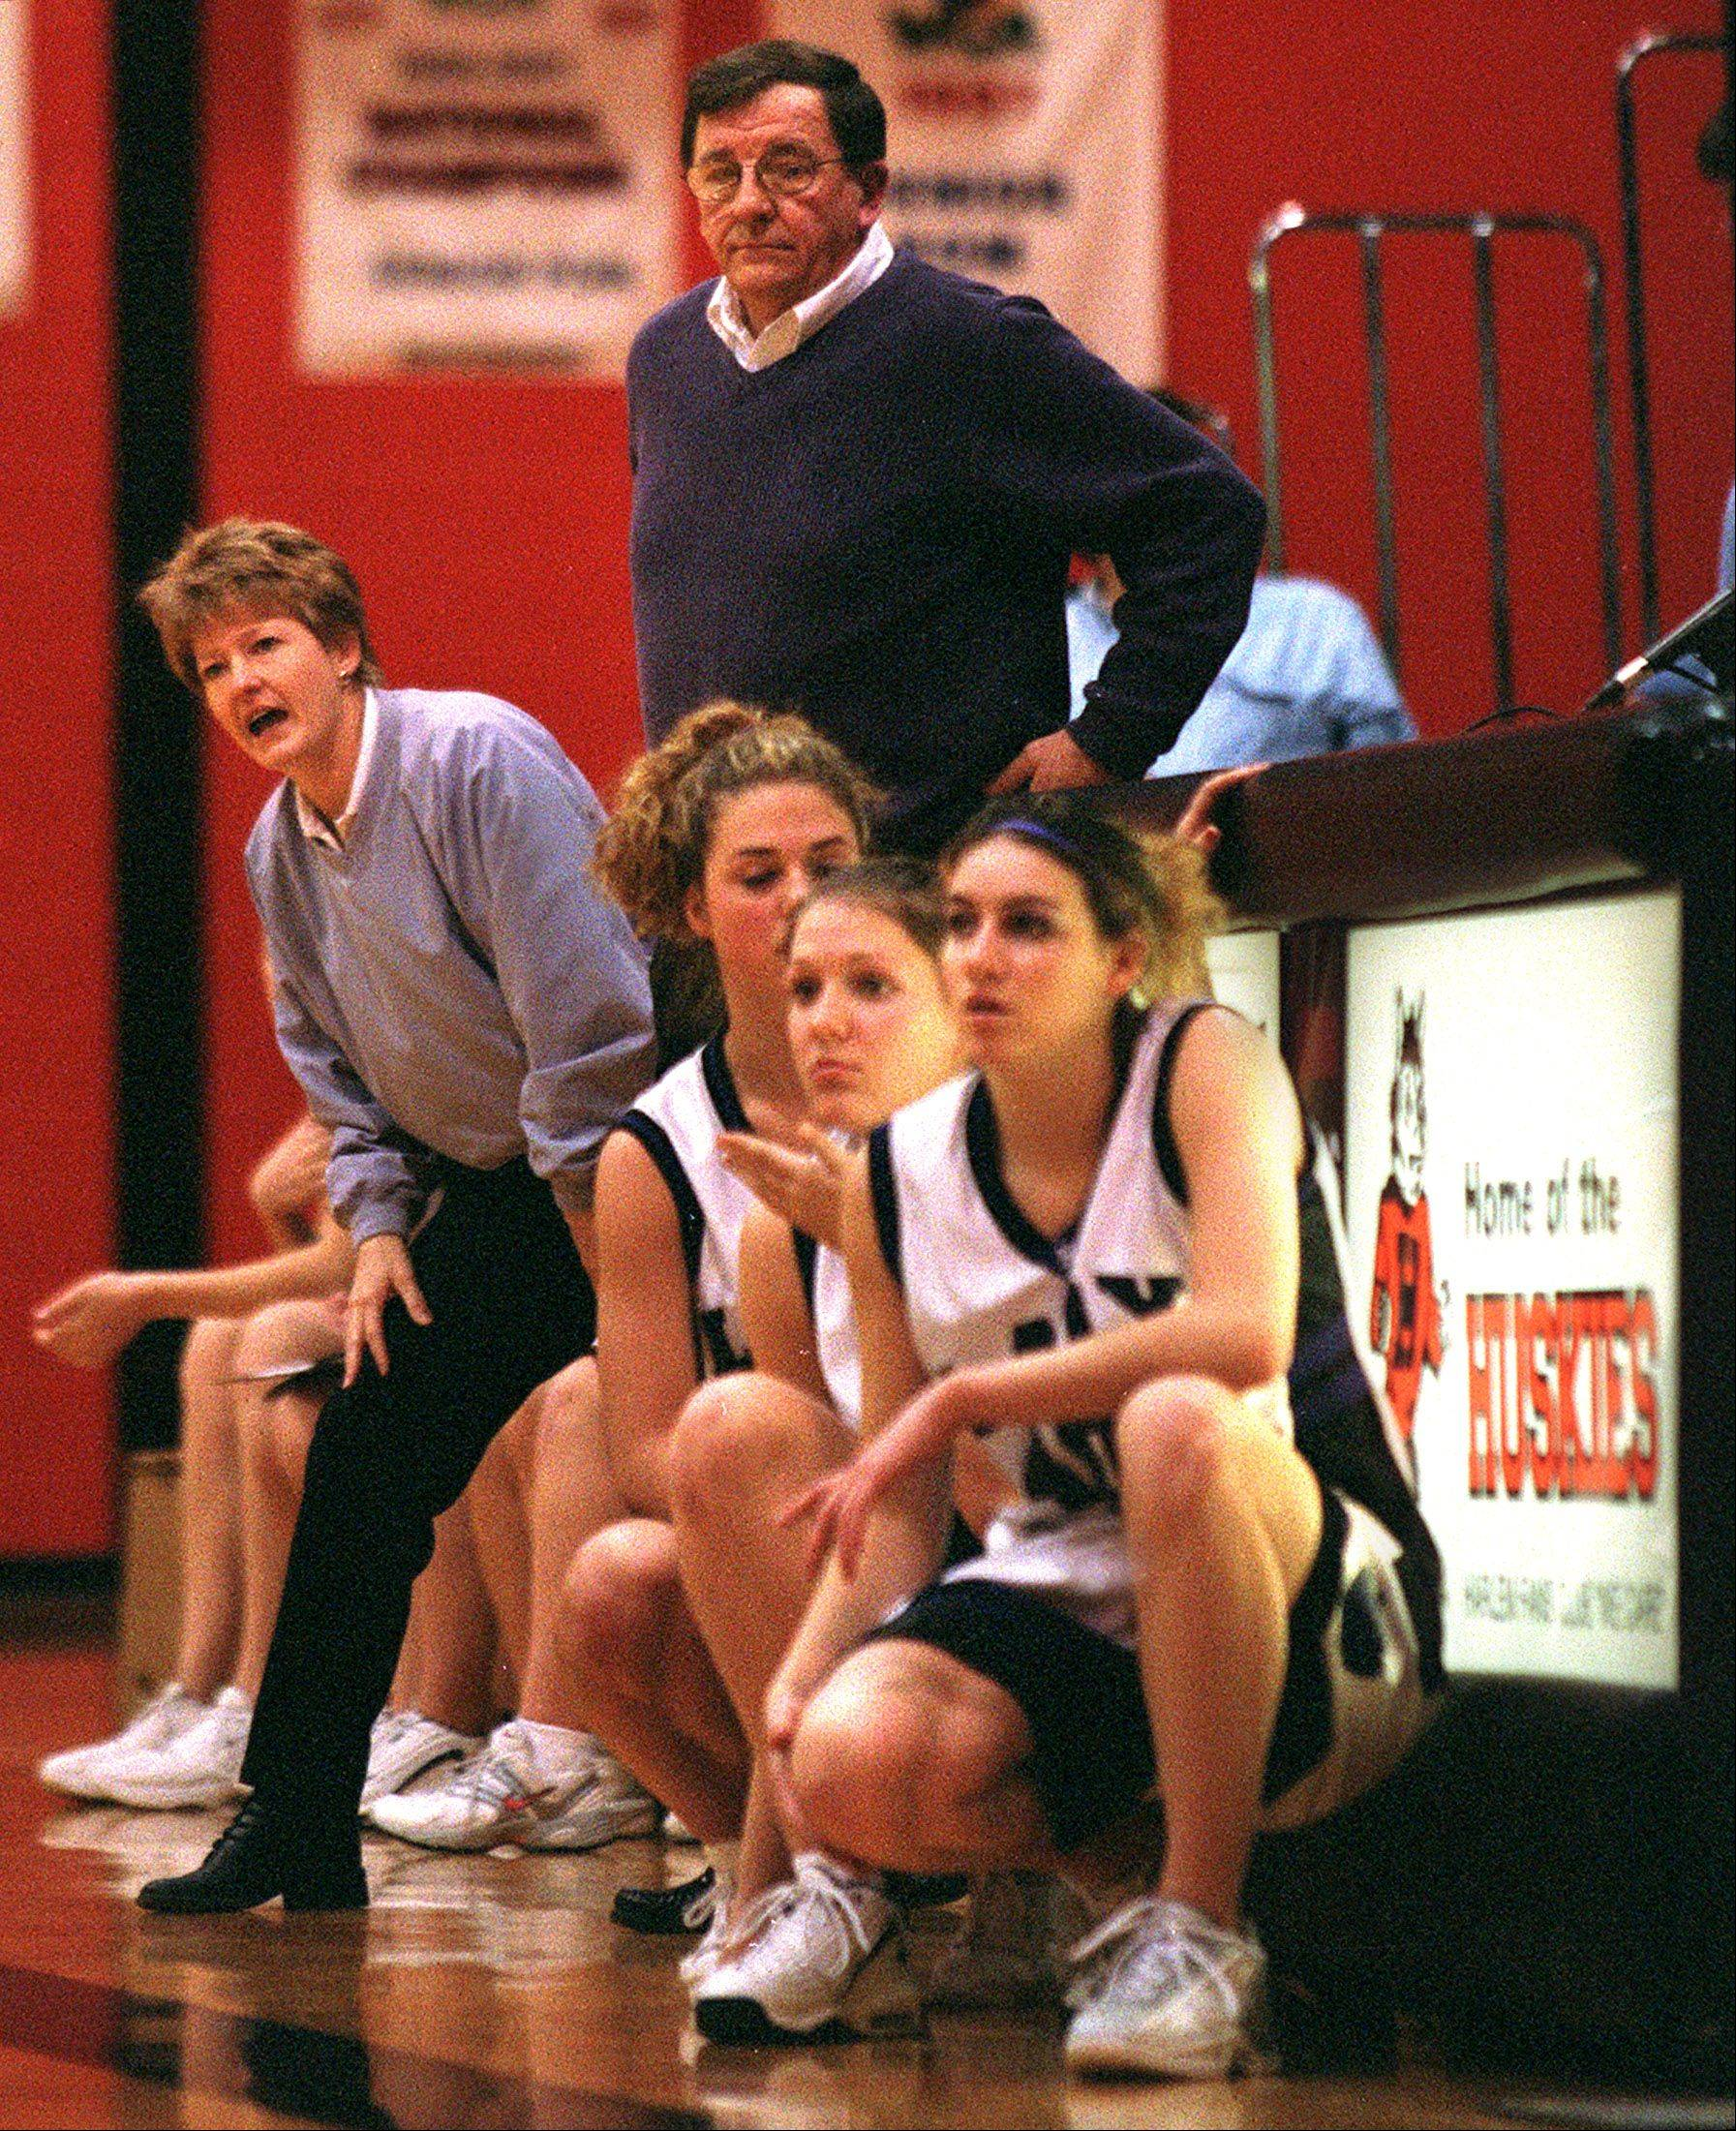 Former Hampshire girls basketball coaches Milt Awe and Sue Ellett guide the Whip-Purs during the 2002 Harlem Christmas Tournament. Later that season, Hampshire brought home its first state trophy in basketball when the Whip-Pur girls finished third in Class A.